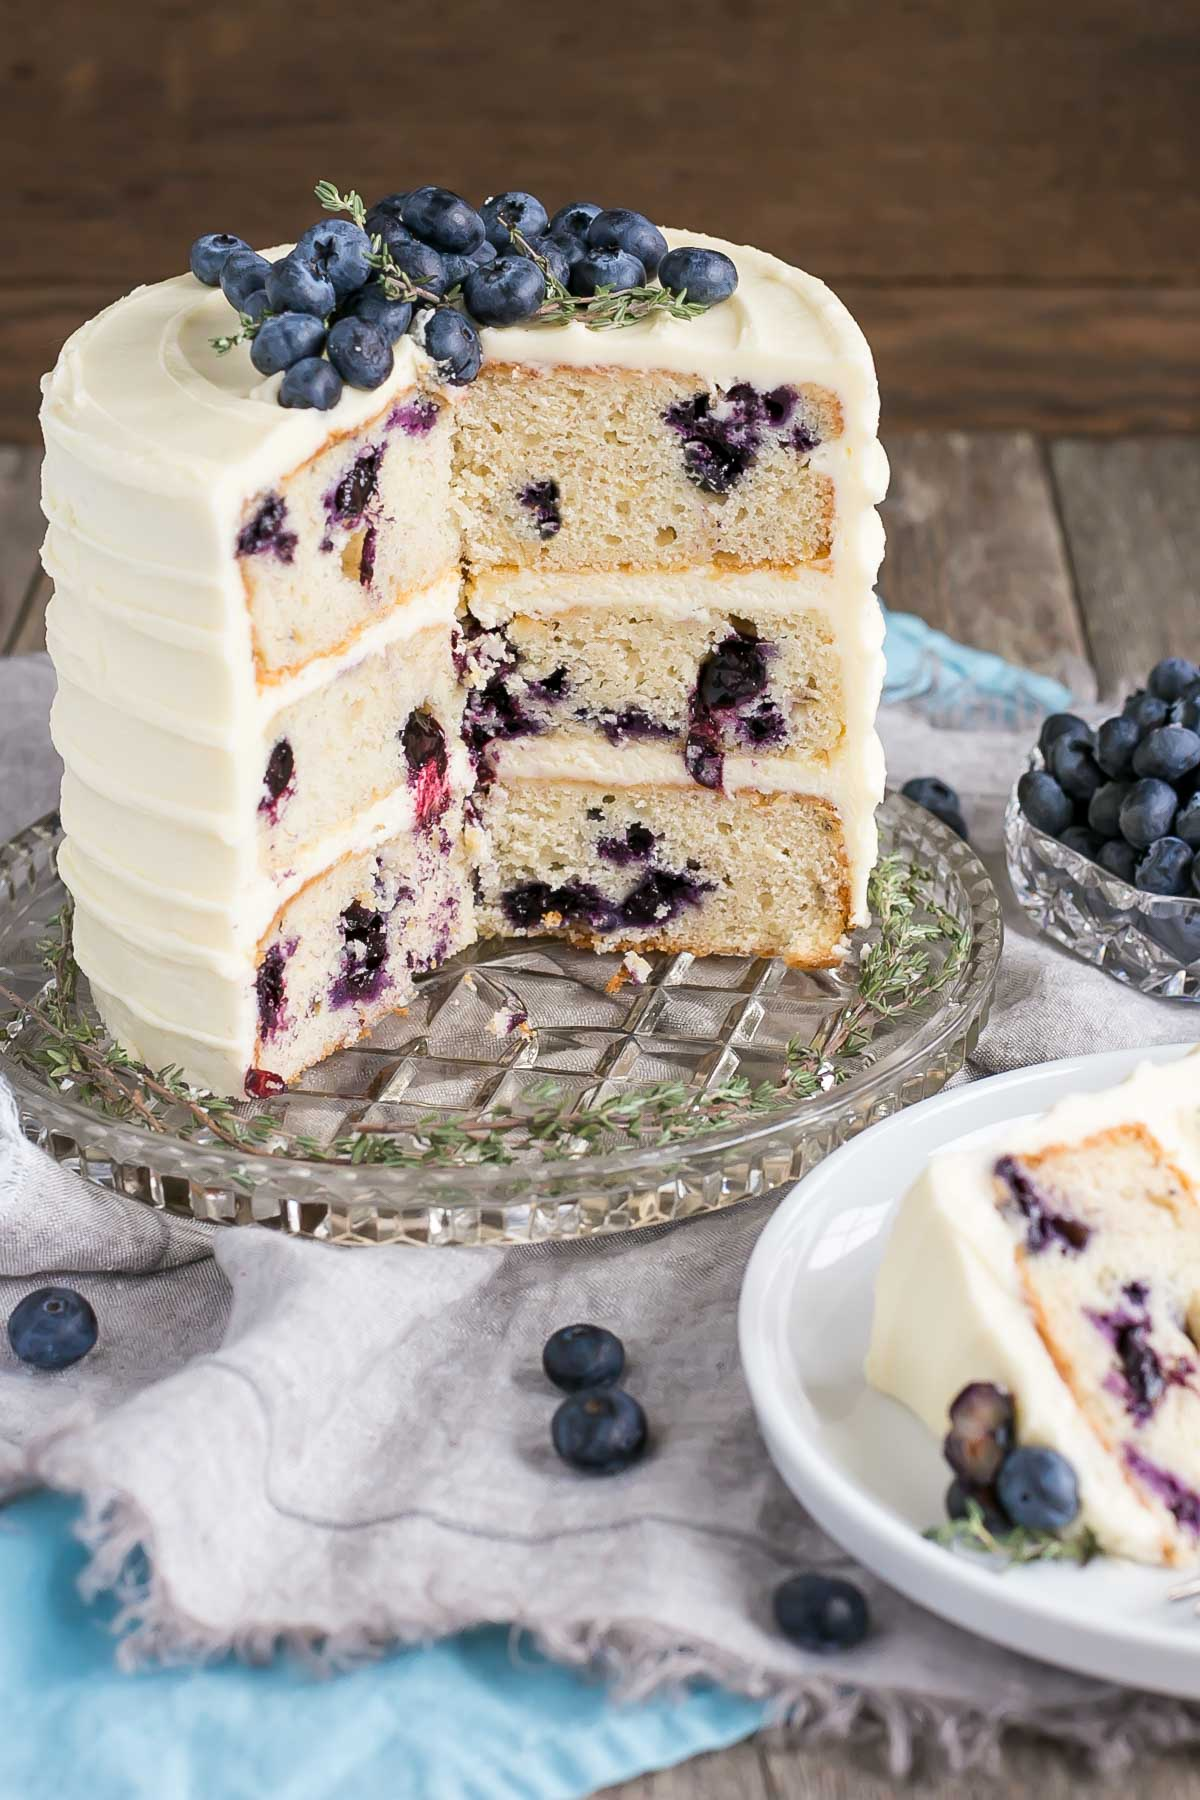 Cake Blueberry Cream Cheese